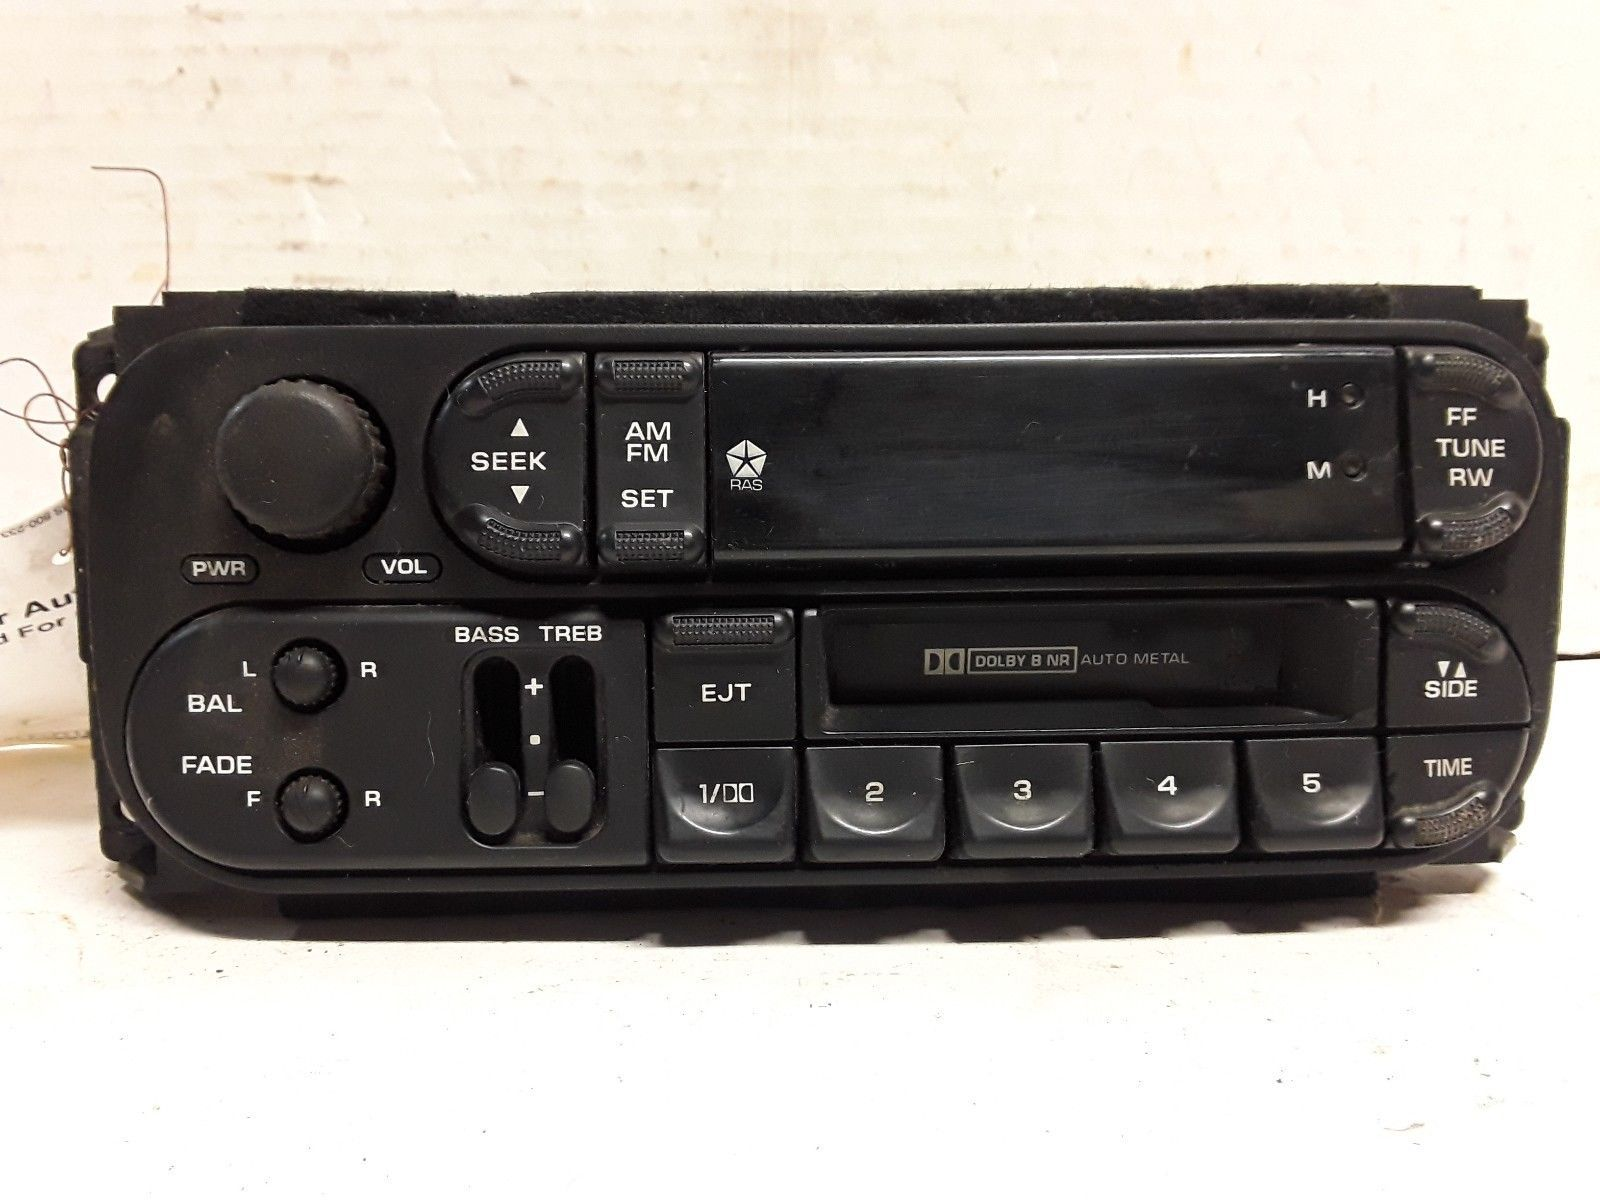 98 99 00 01 02 Dodge Chrysler Jeep AM FM cassette radio receiver OEM P56038931AB